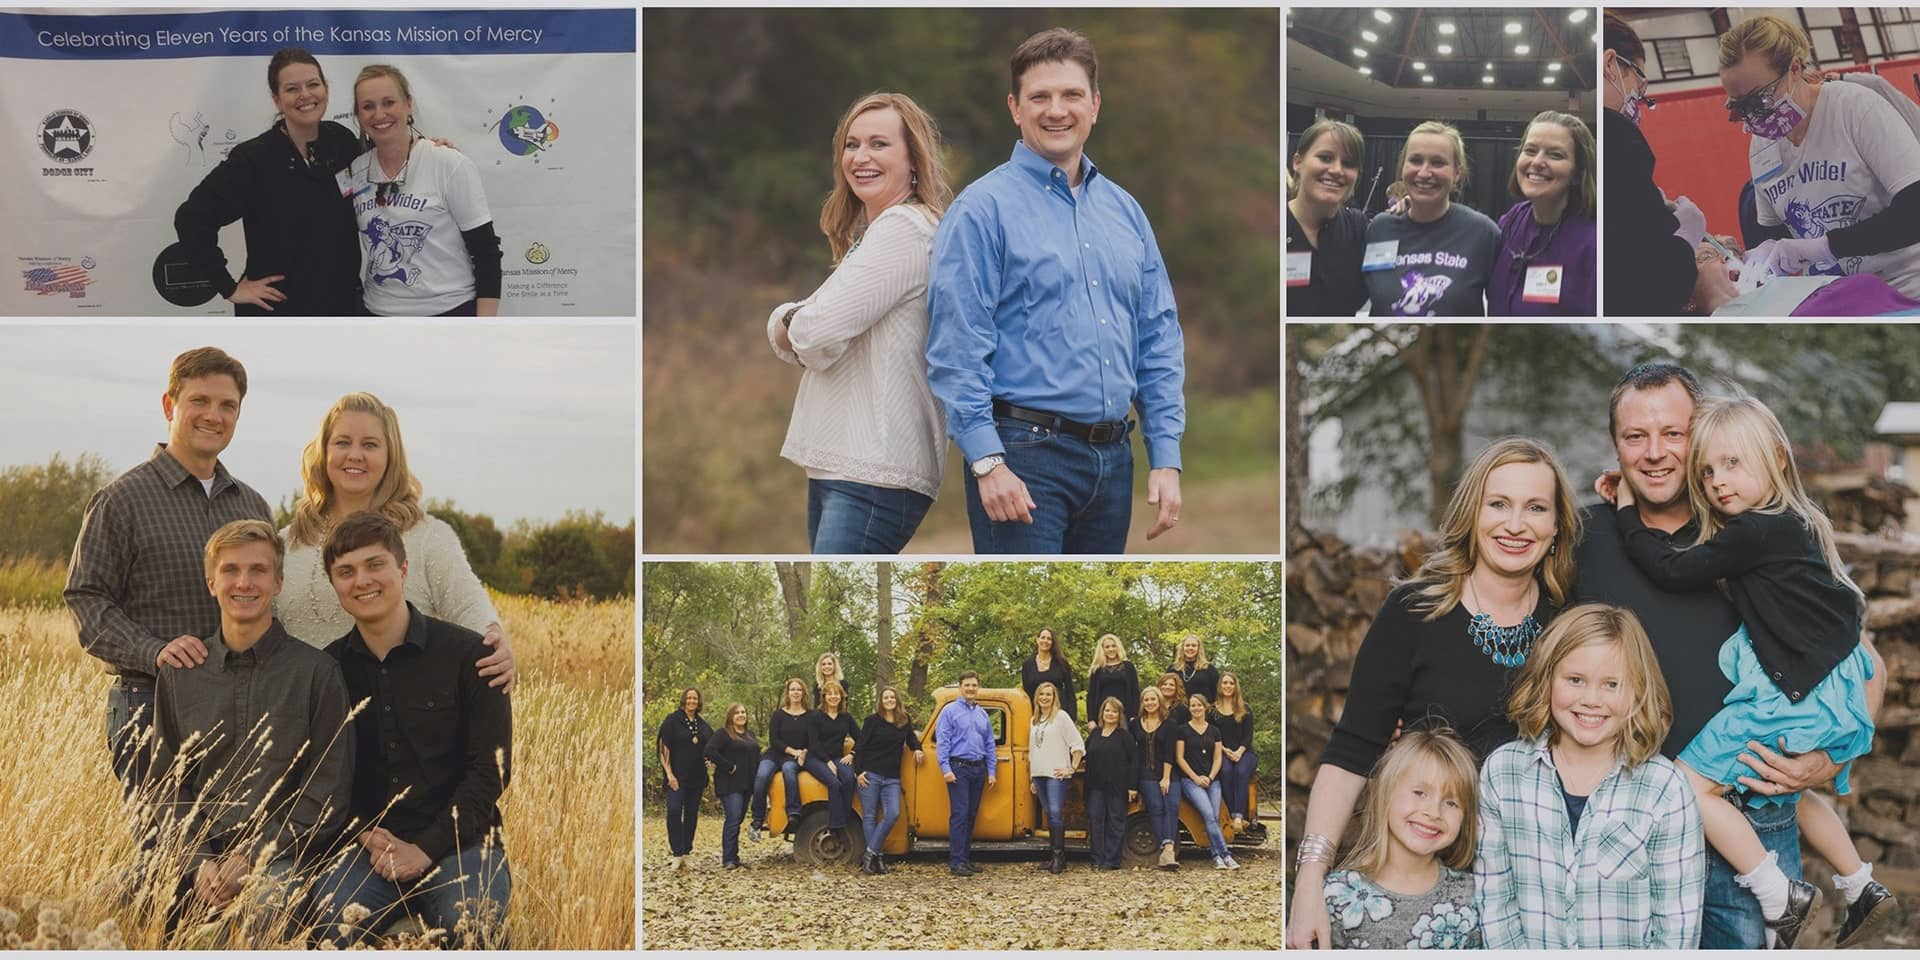 Collage of images of the team and families of Smile Connections Family Dental a dentist office in Wichita, KS.